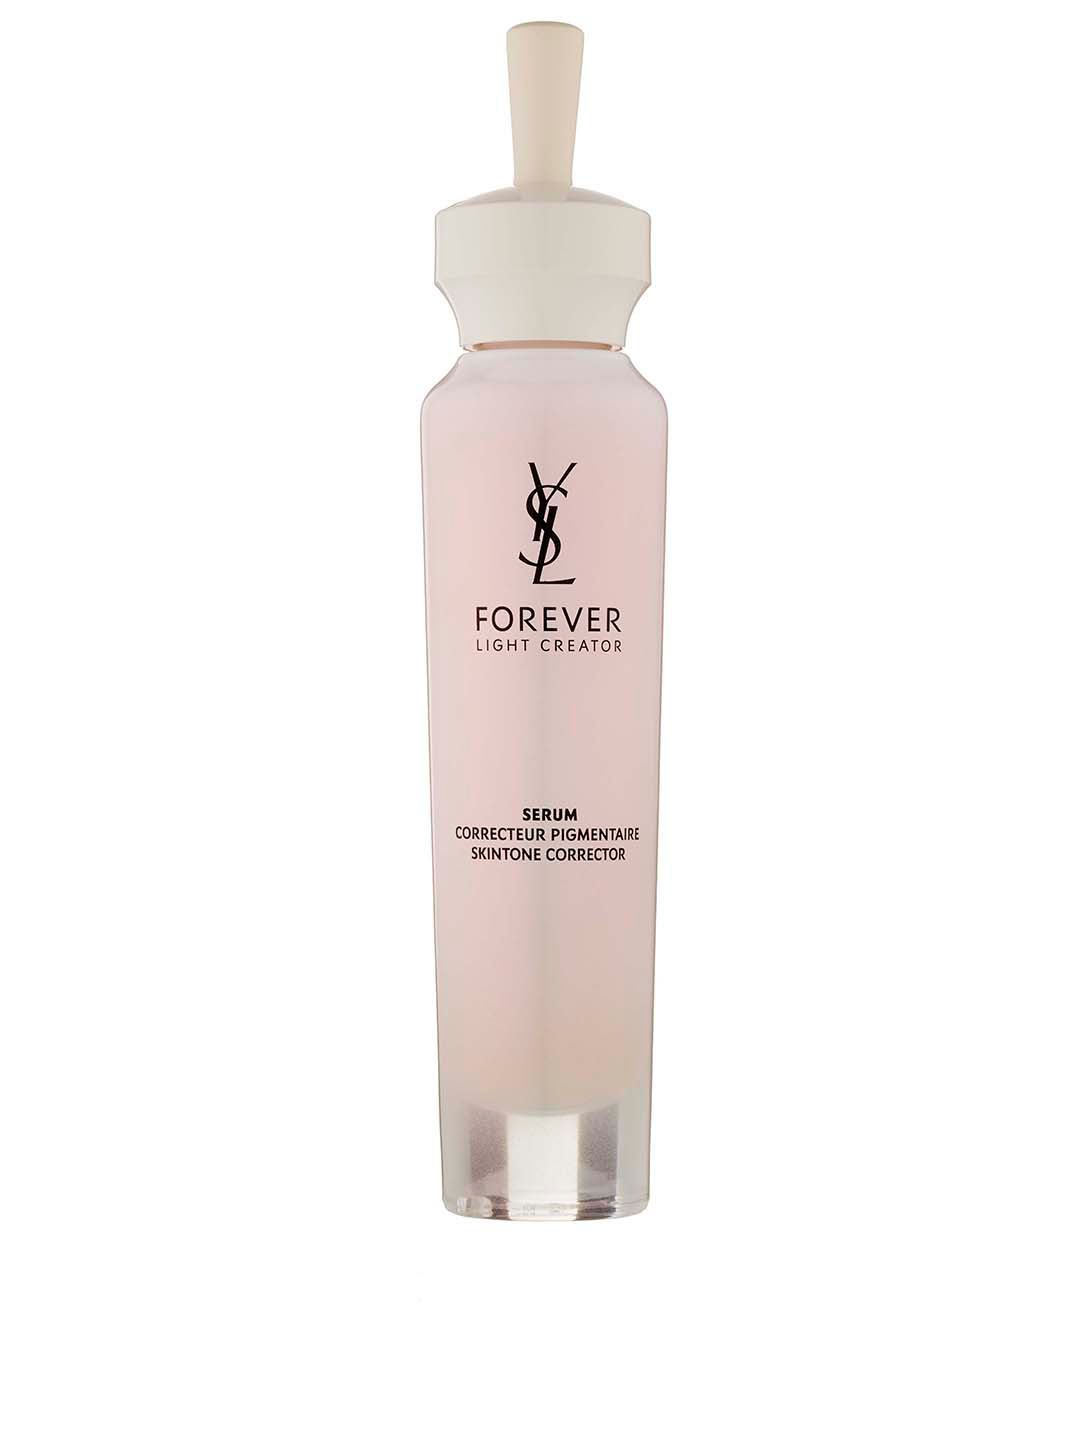 YVES SAINT LAURENT Forever Light Creator Skintone Corrector Serum Beauty